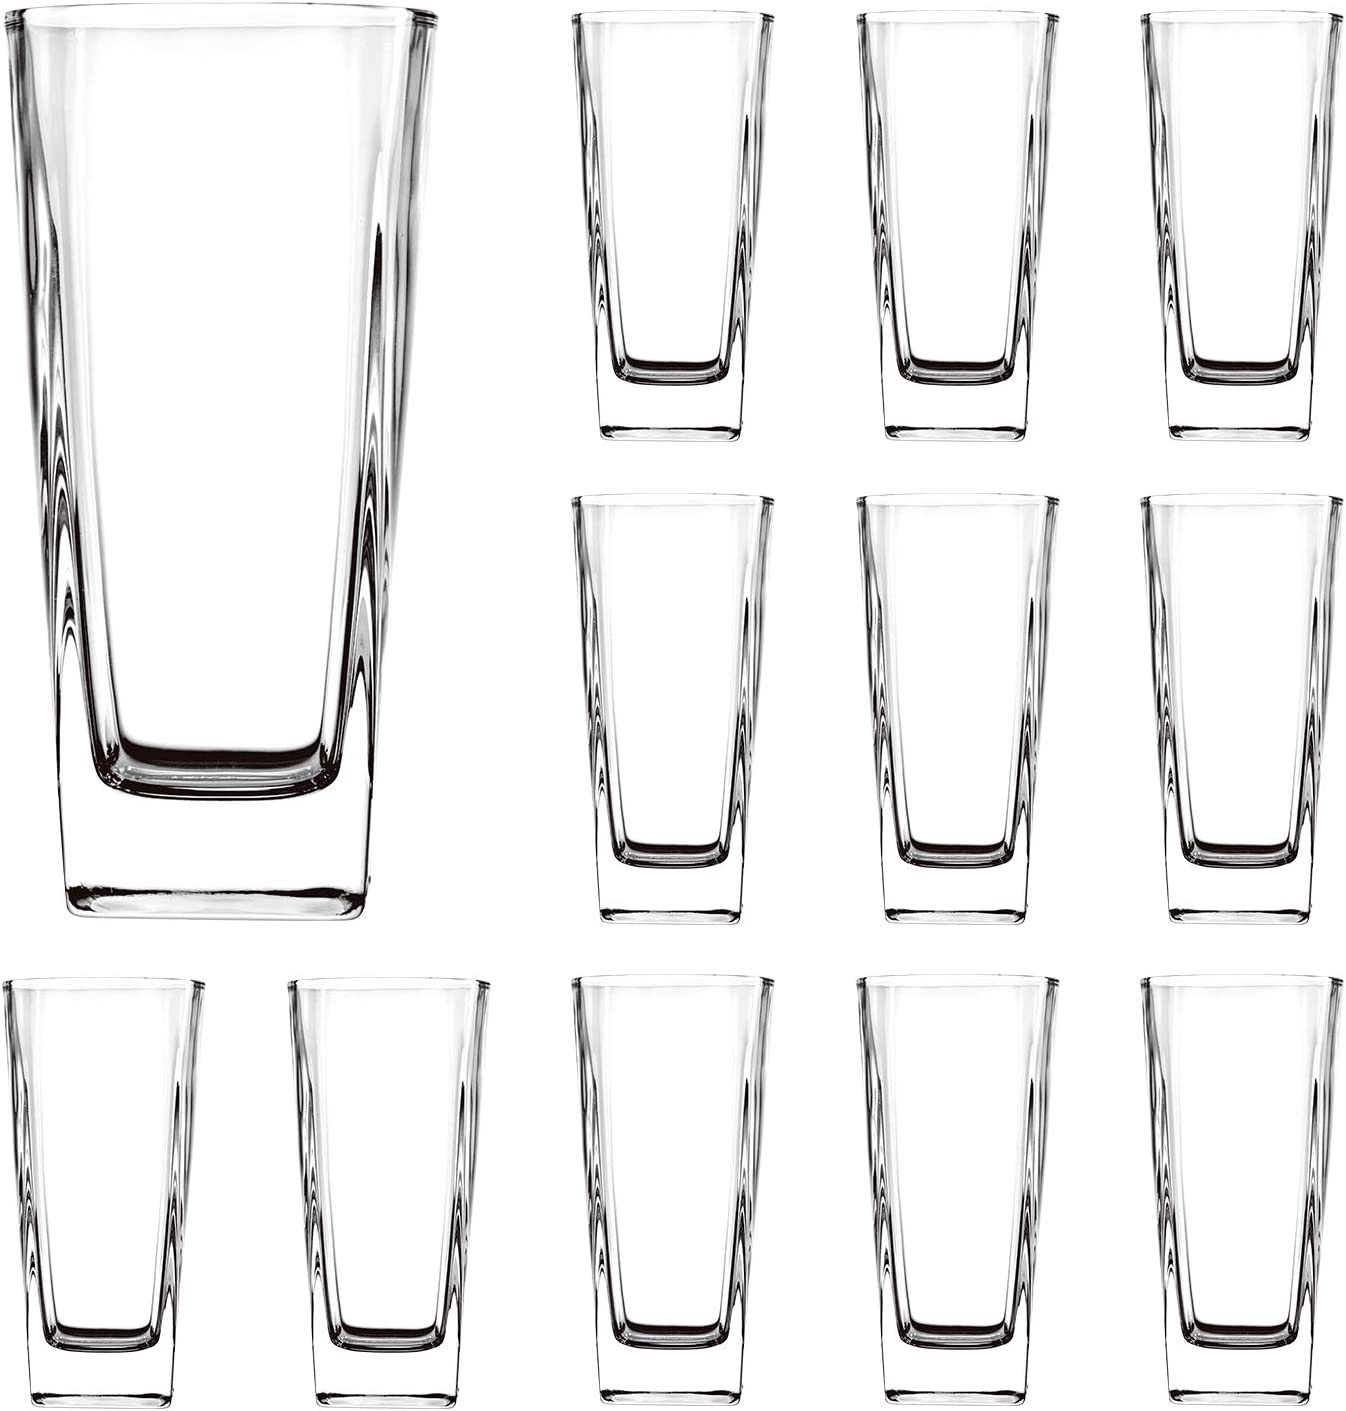 Clear Highball Glasses 8 oz,QAPPDA Drinking Tumblers Glass Cups For Home and Kitchen,Cocktail Glass Great for Restaurants,Bars,Parties,Water Glass Drinking Cups Juice Cups 12 Pack KTY4012